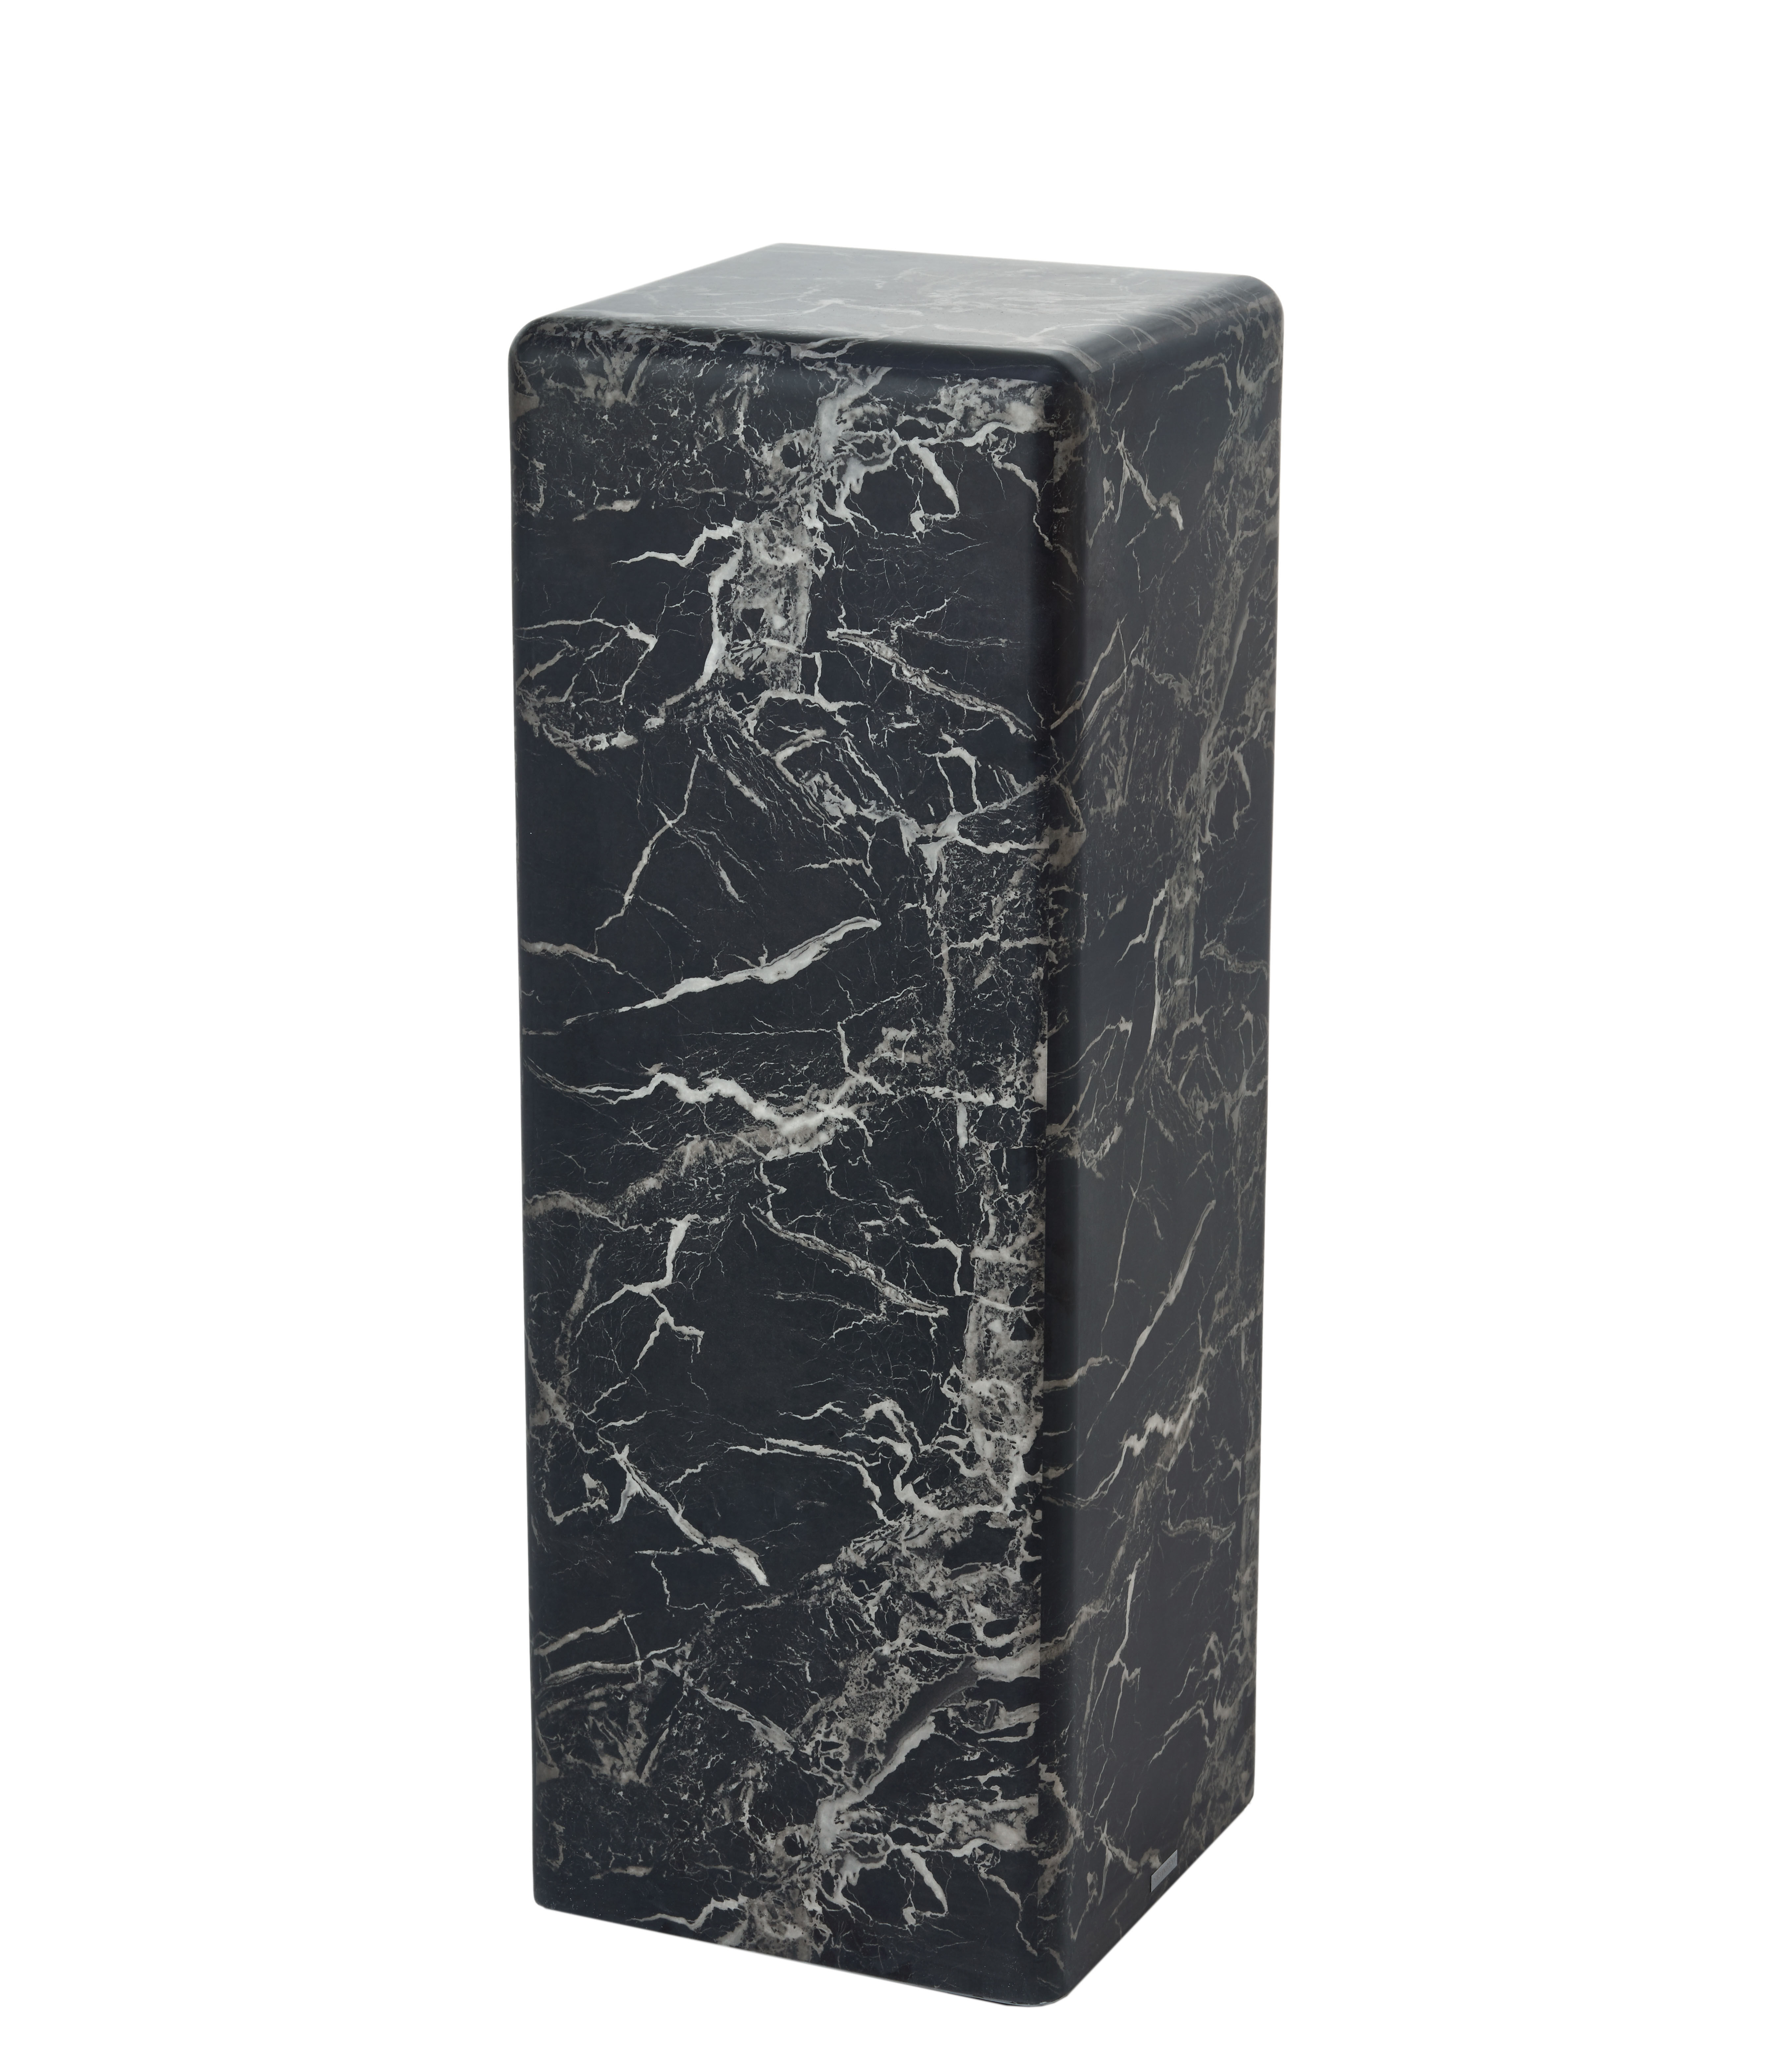 Furniture - Coffee Tables - Marble look Large End table - / H 91 cm – Marble effect by Pols Potten - Black - MDF, Resin